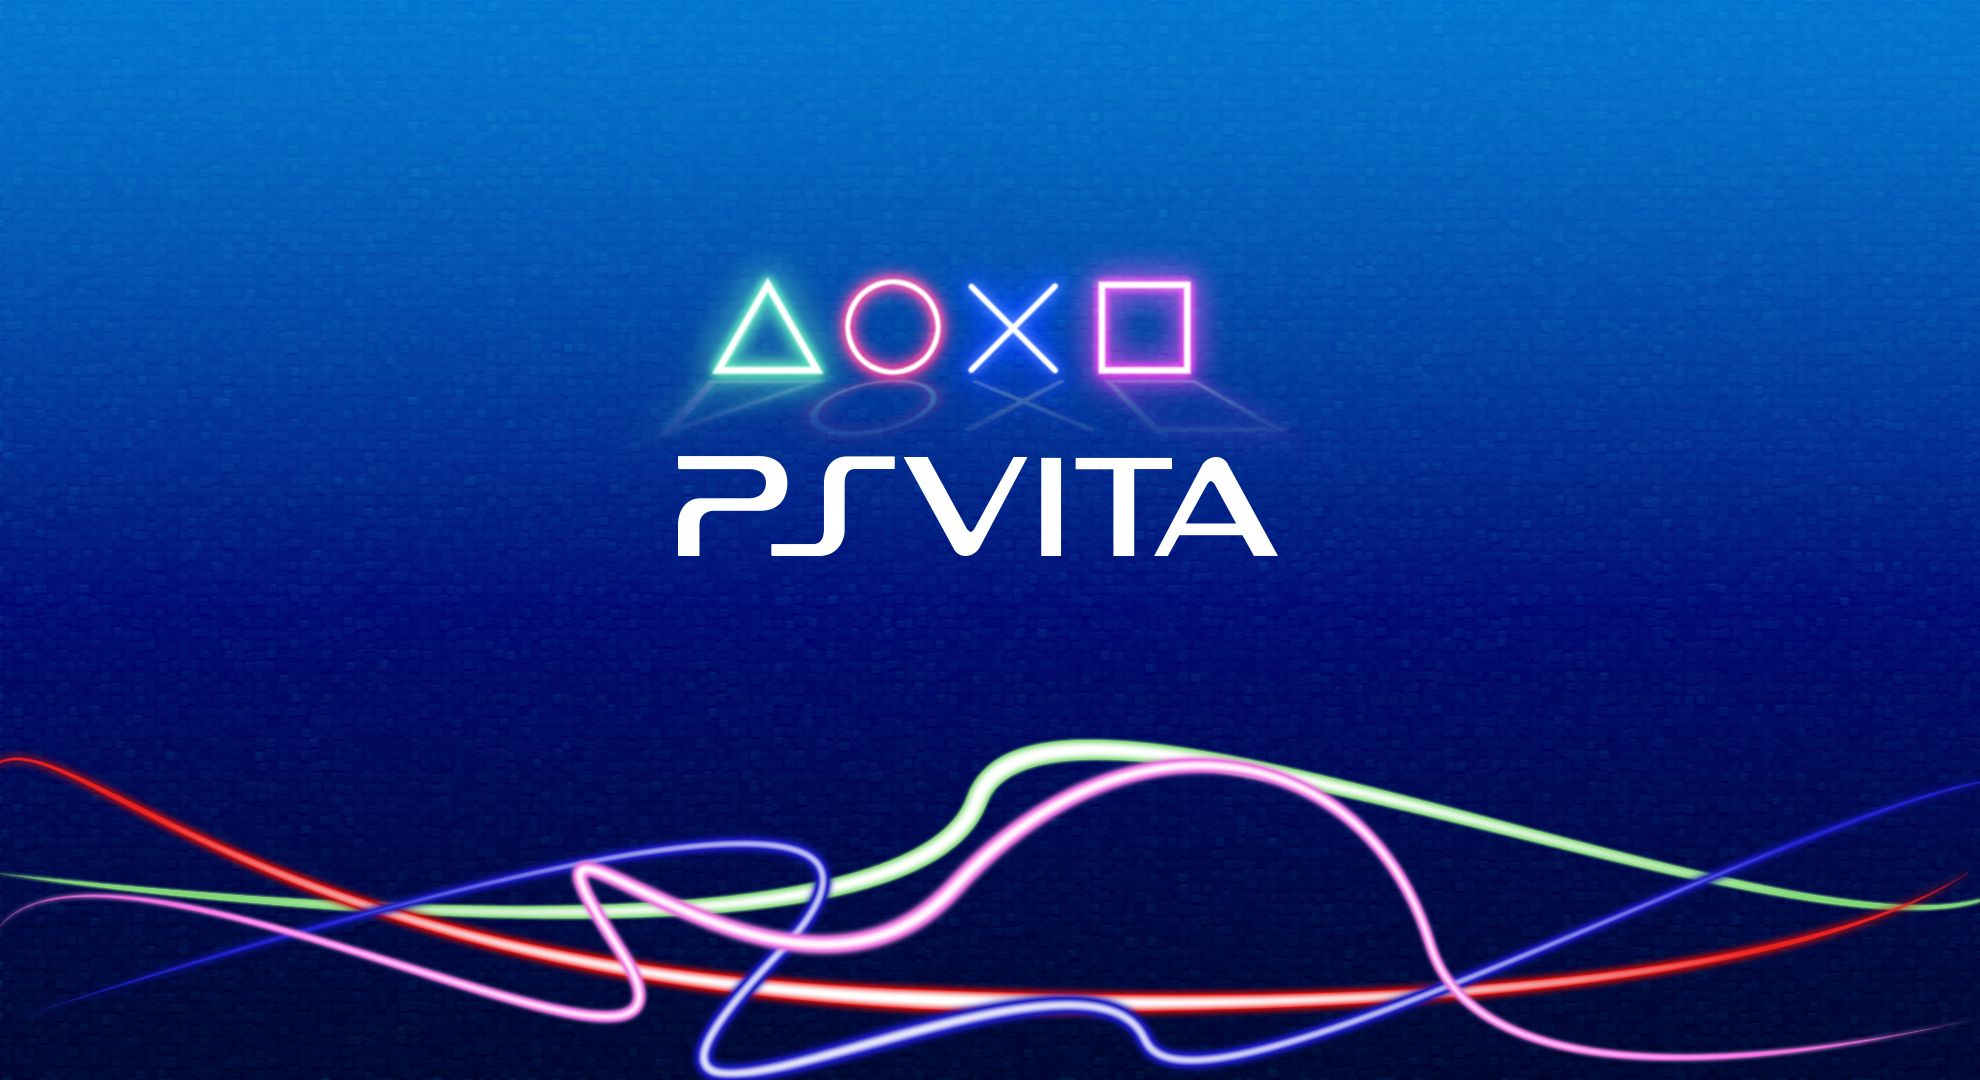 playstation vita wallpaper thread playstation vita giant bomb | hd